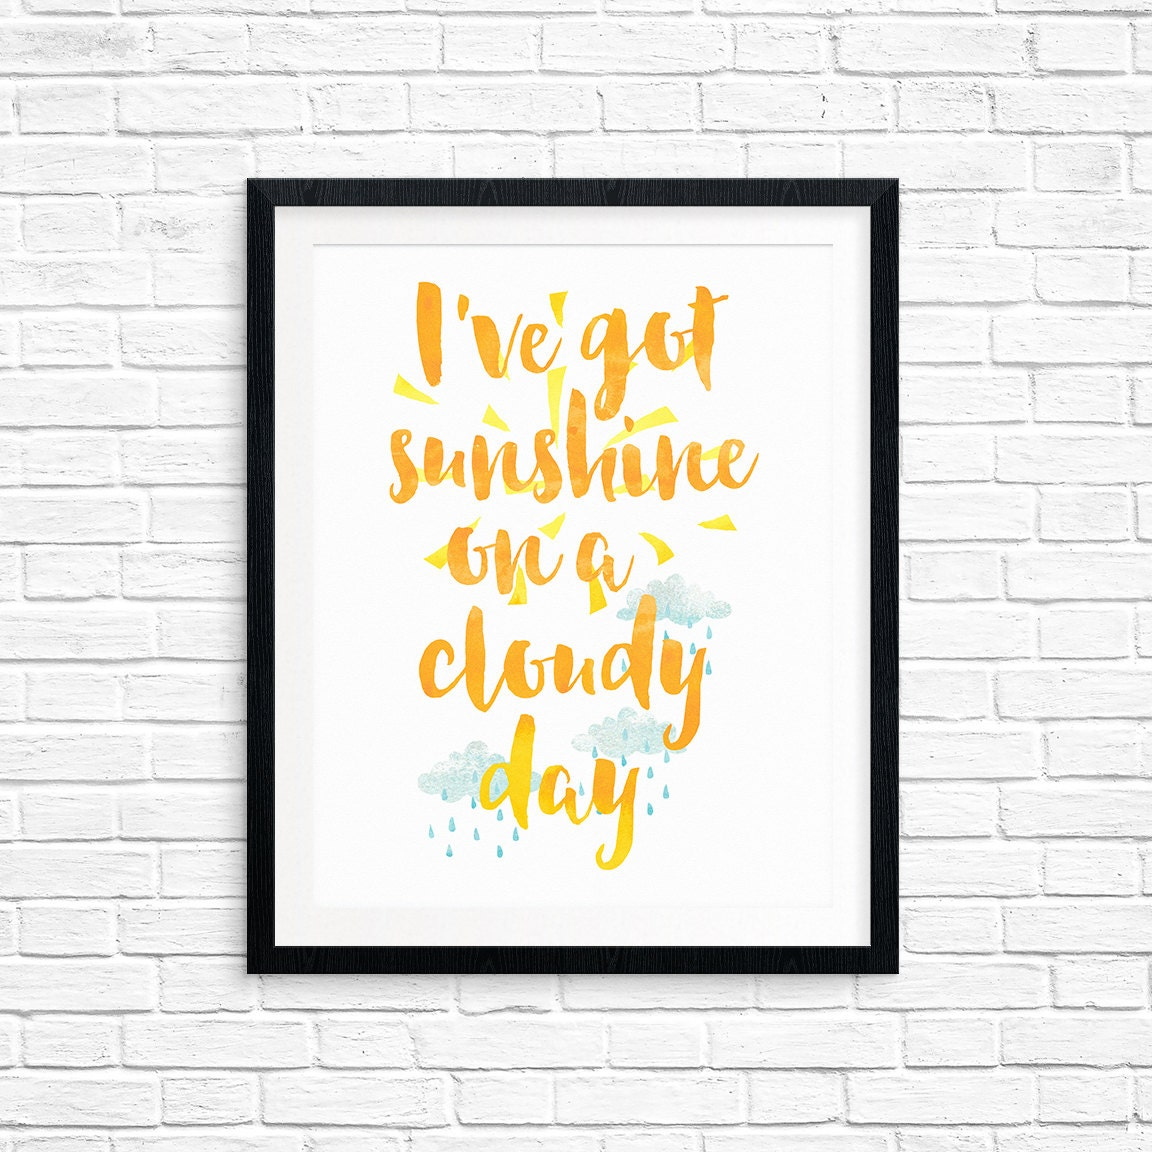 Free Printable, Ive got Sunshine on a Cloudy Day